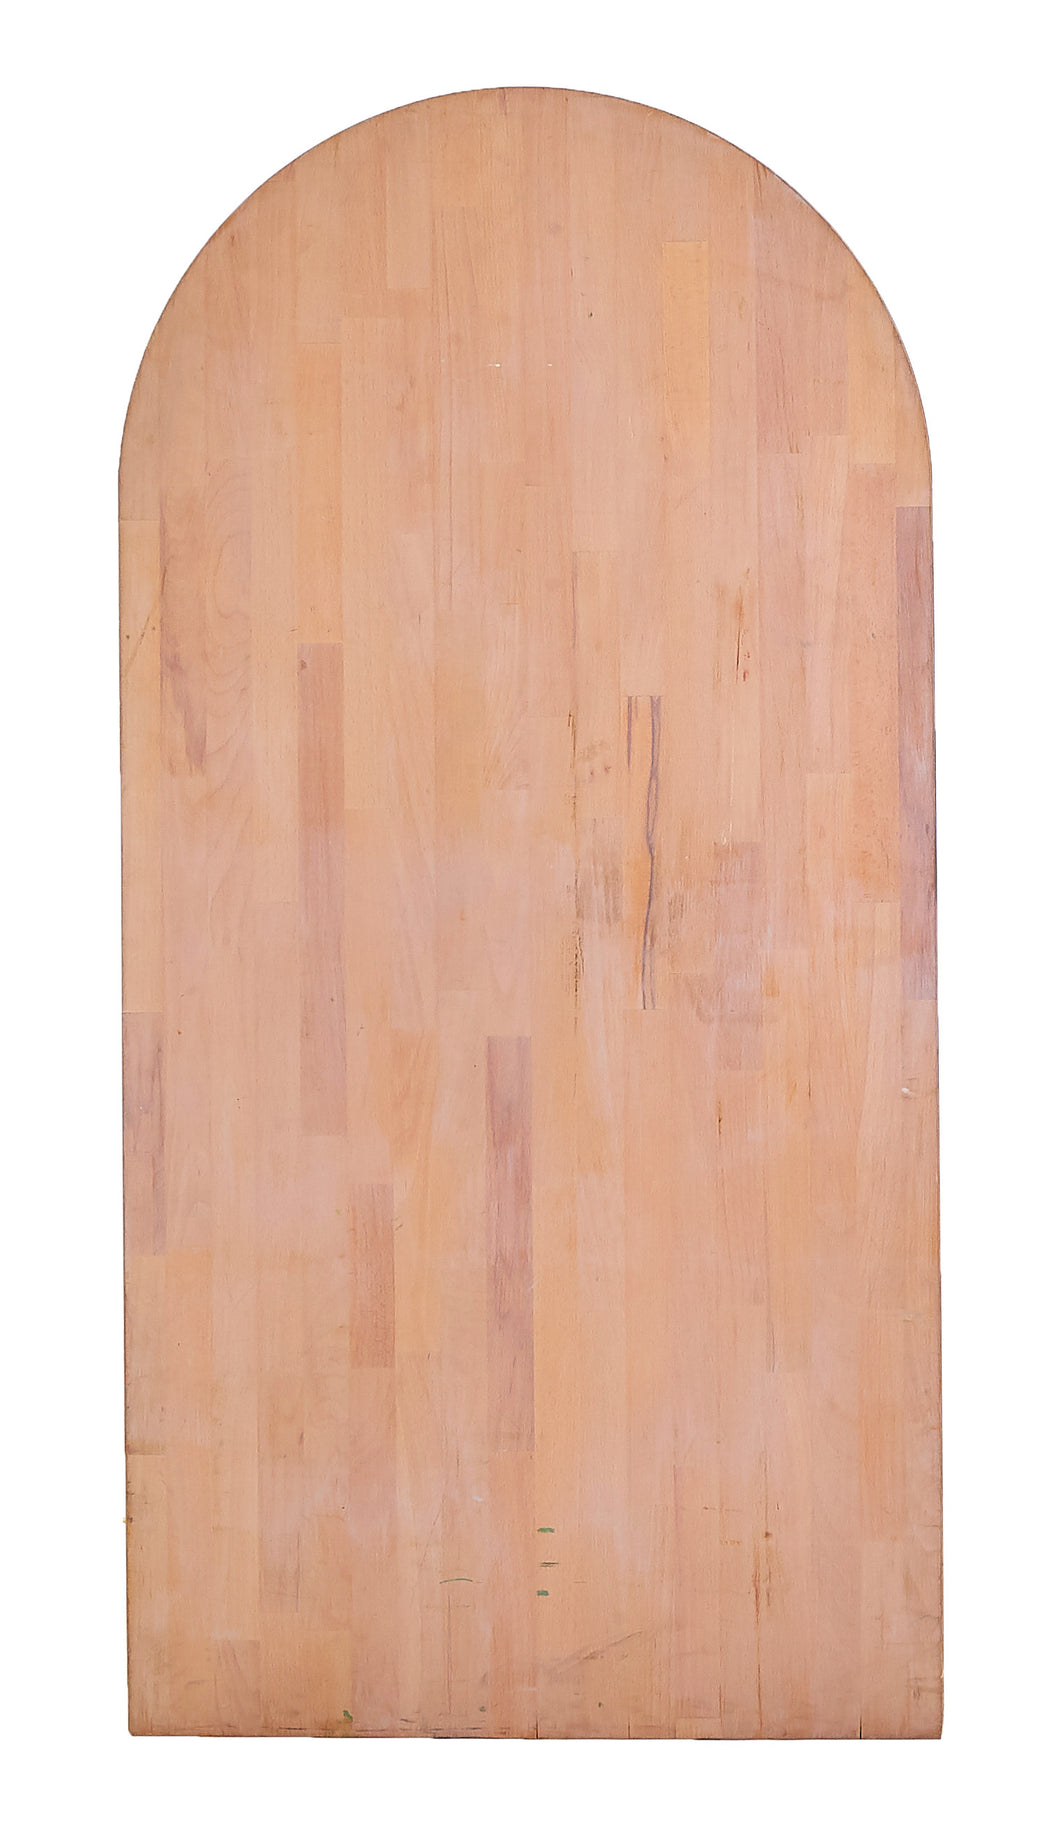 Md Rounded Butcher Block, Warm Tone